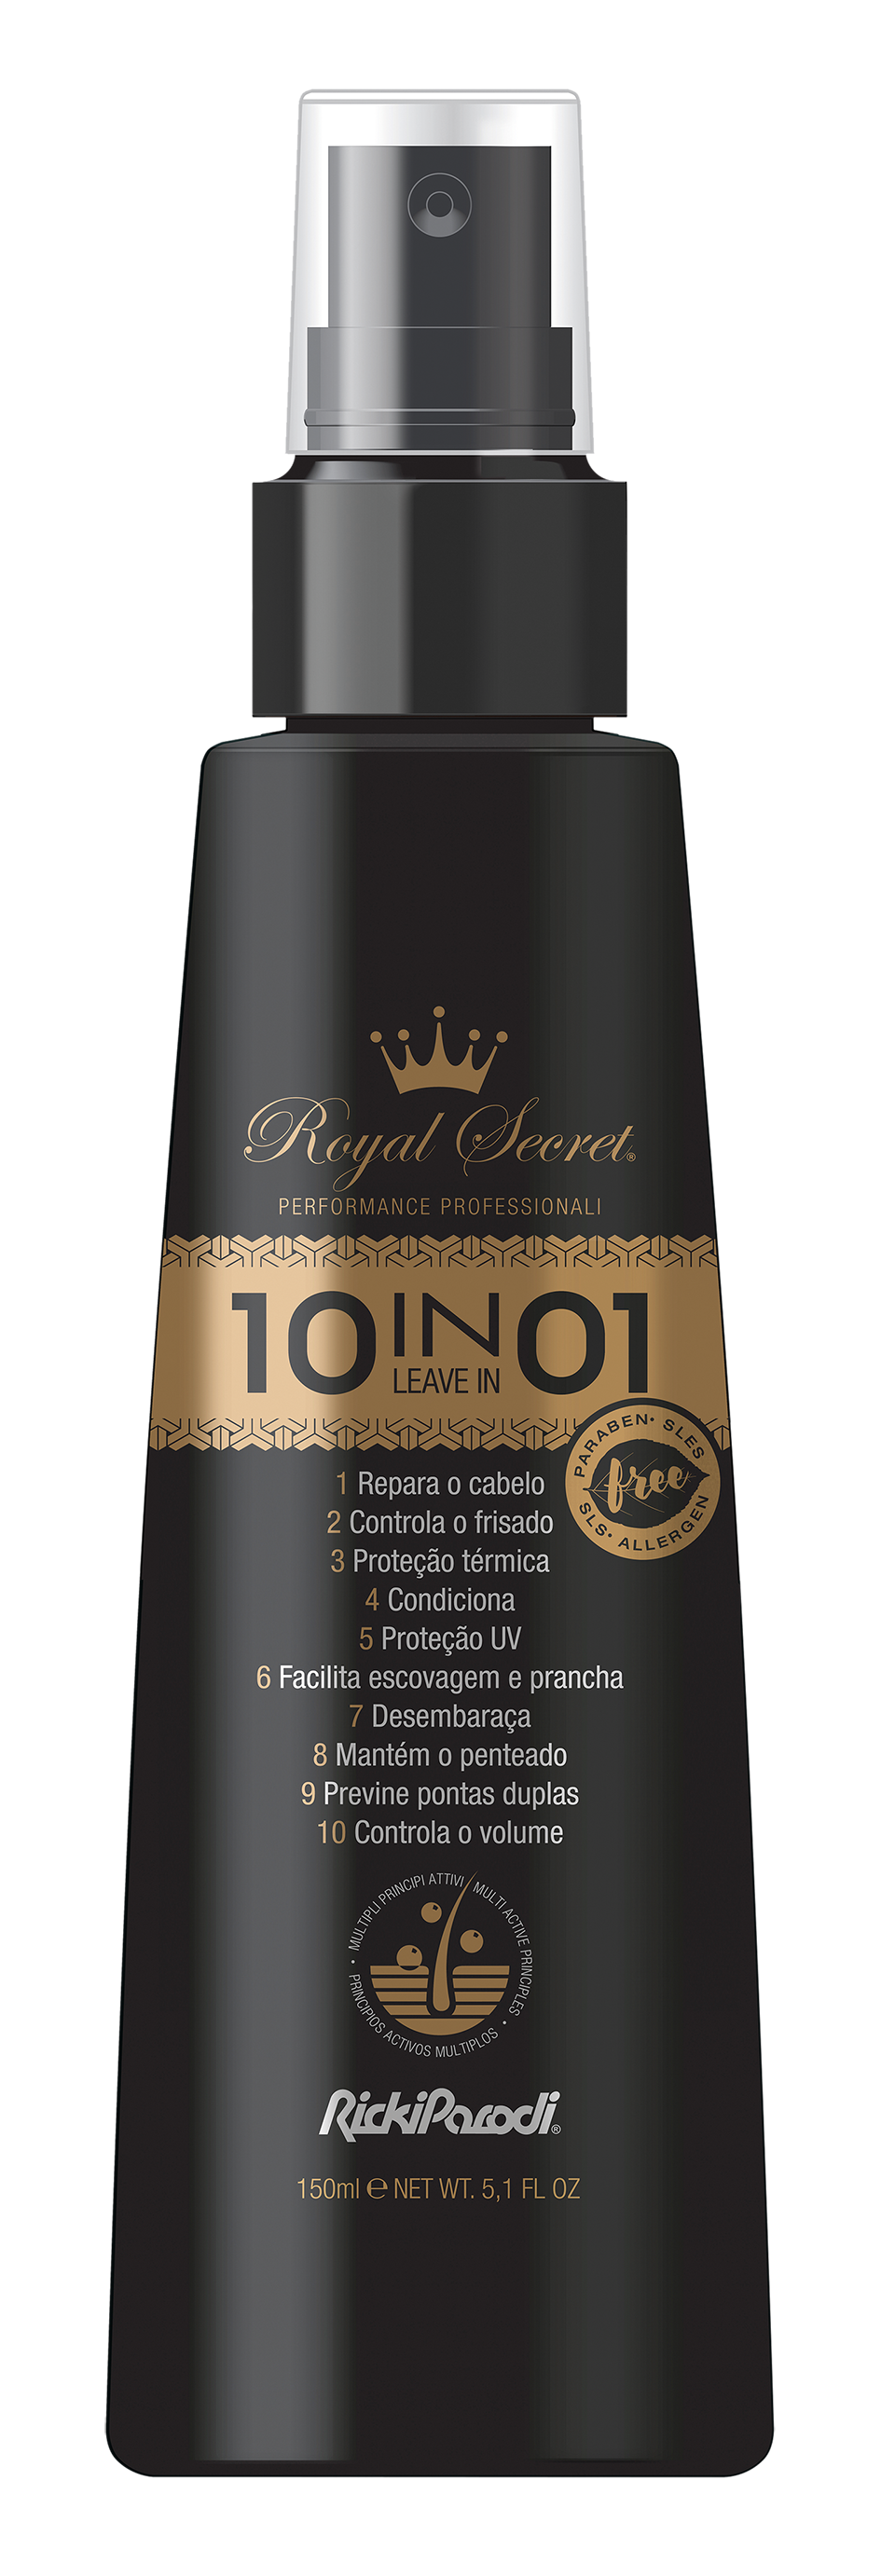 Leave In Capilar Rickiparodi Royal Secret 10 Em 1 150 ml